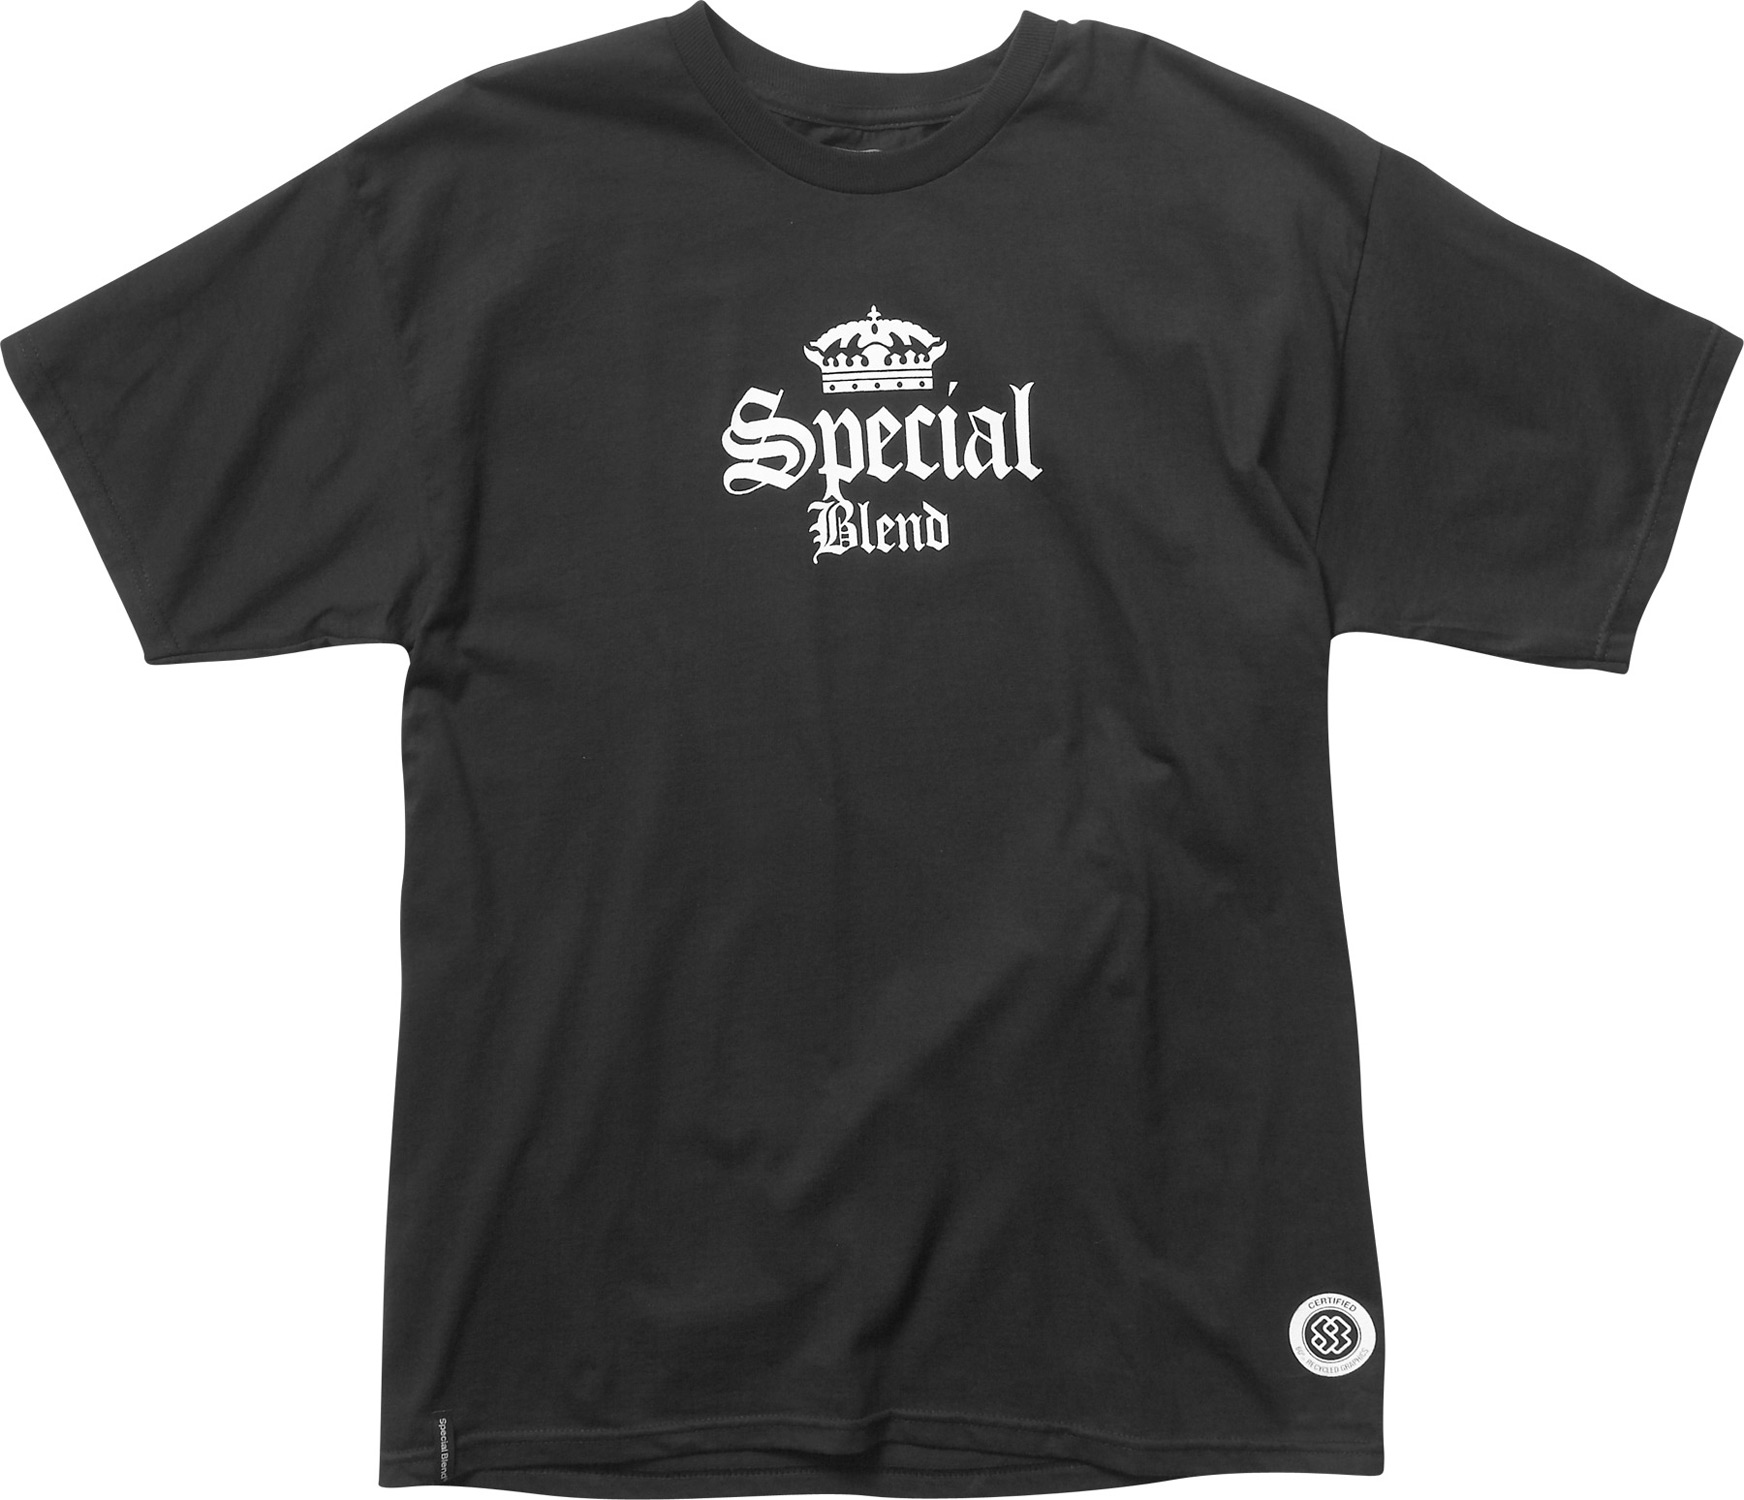 Key Features of the Special Blend Cerveza T-Shirt: Basic Tee / Freedom Fit Short Sleeve Tee 100% Ringspun Tubular Cotton, 5.5 Oz. Screenprint Art - $11.95